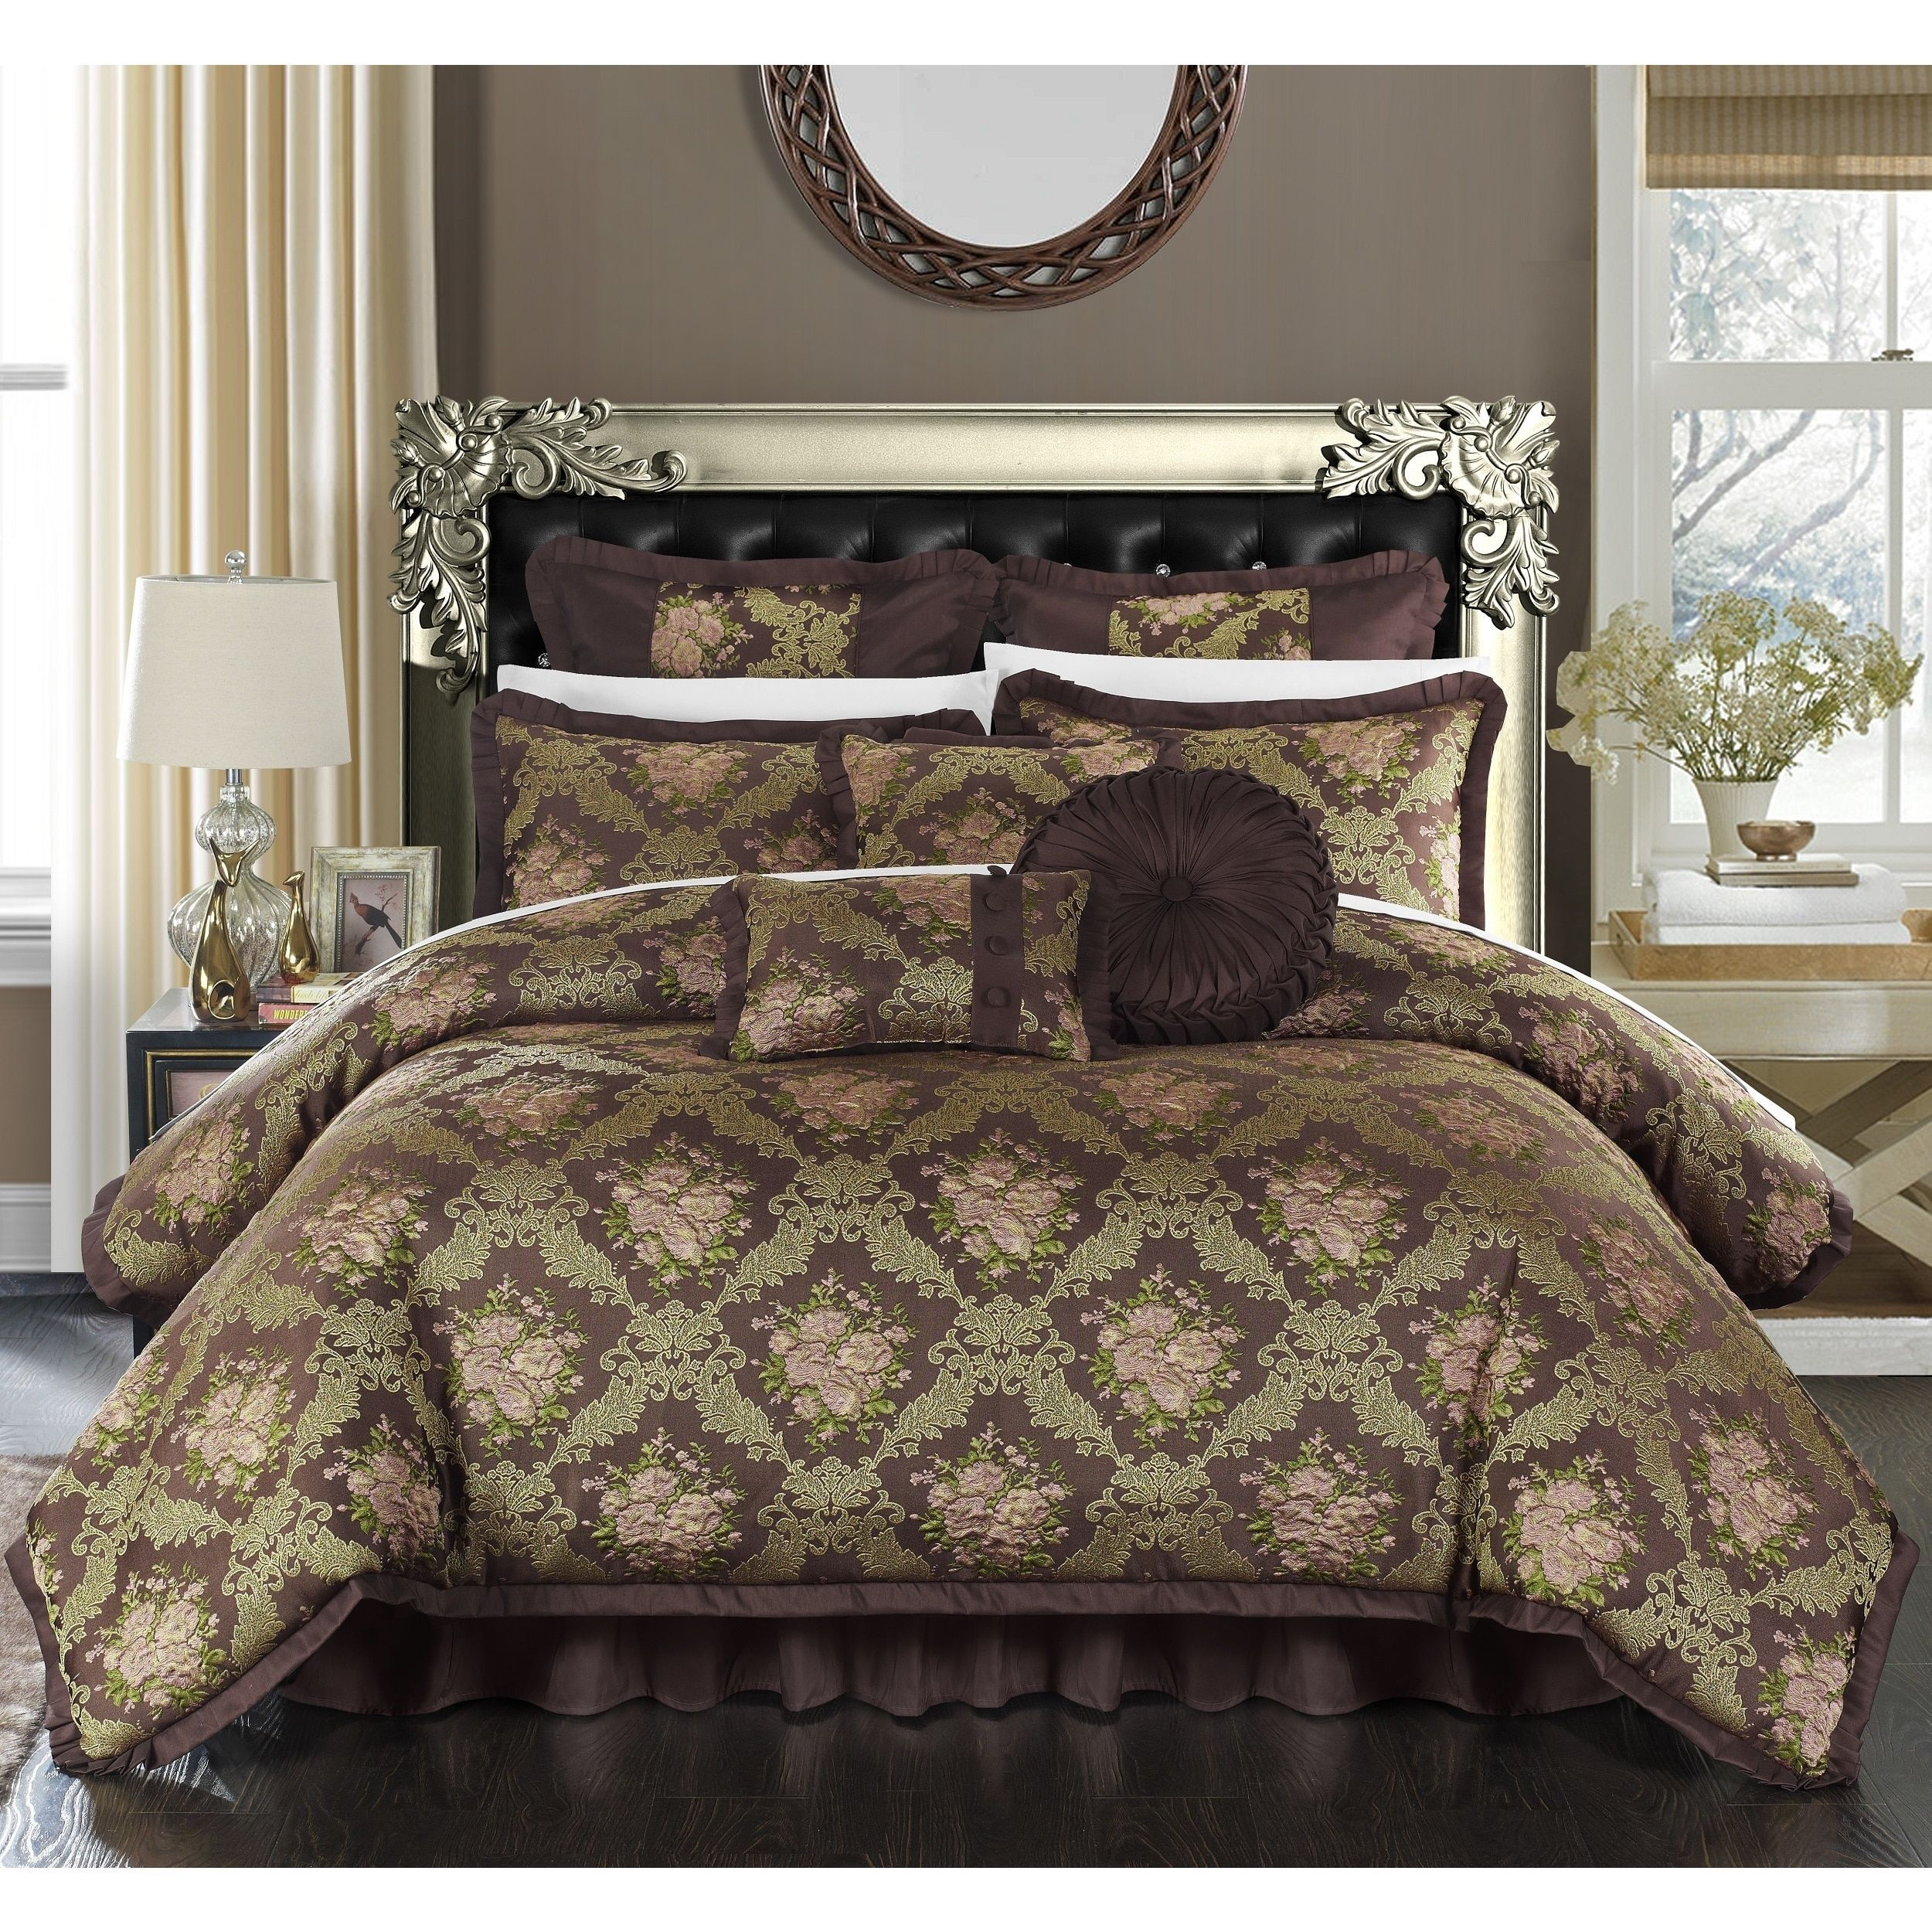 bath jacquard fabric beige free set today comforter bedding piece antonio shipping scroll overstock chic product home